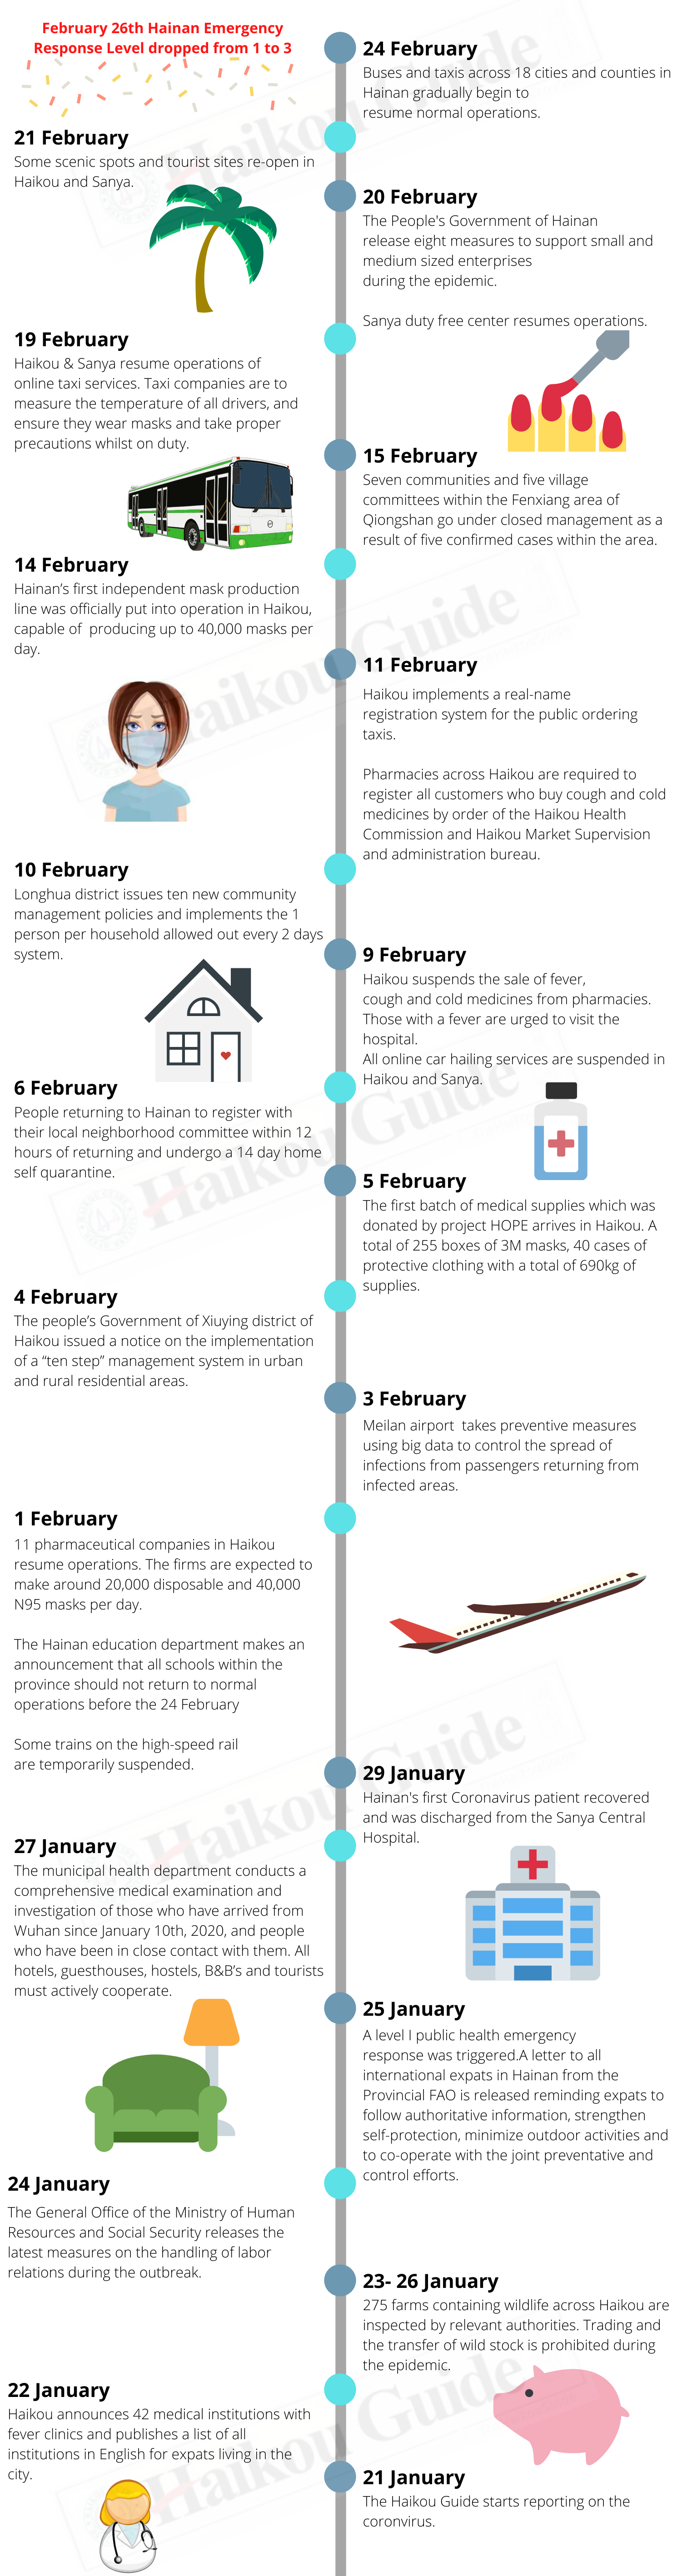 Hainan epidemic timeline of events